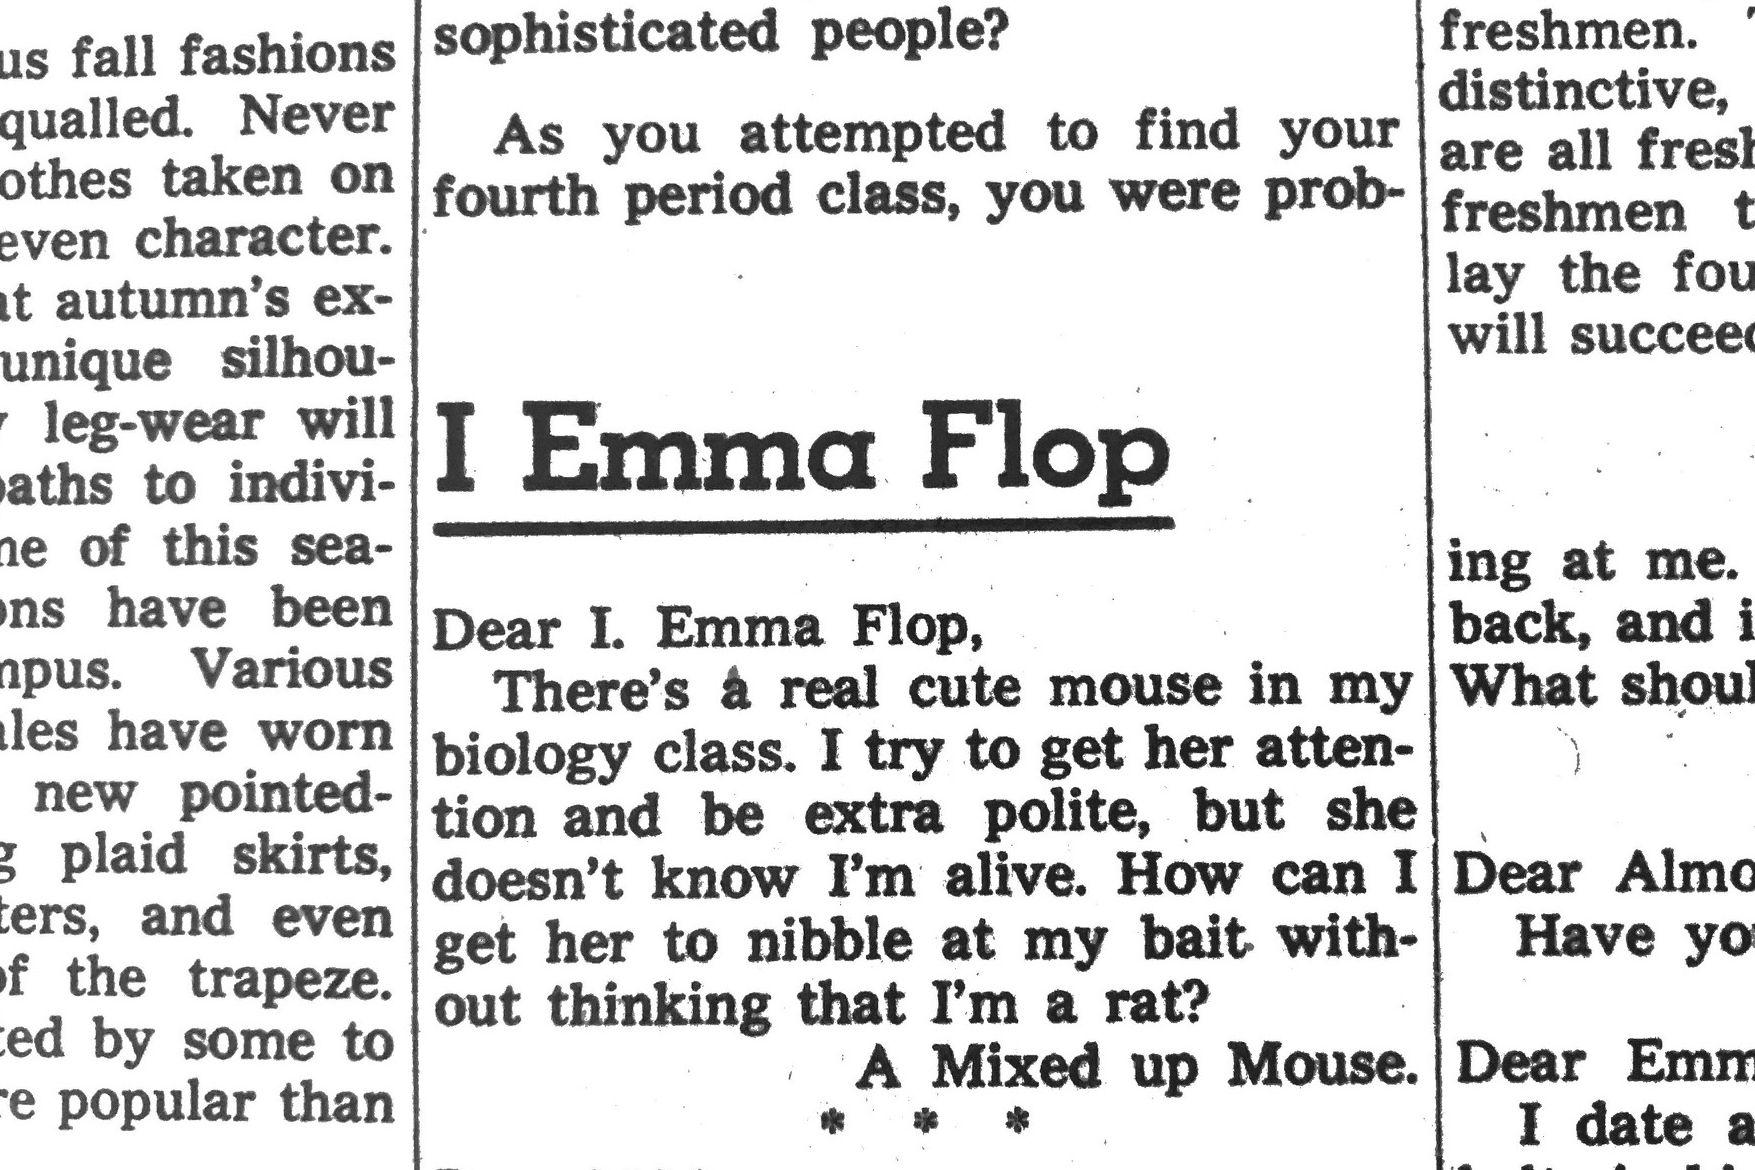 I Emma Flop: Reviving the Bark Advice Column from 1958